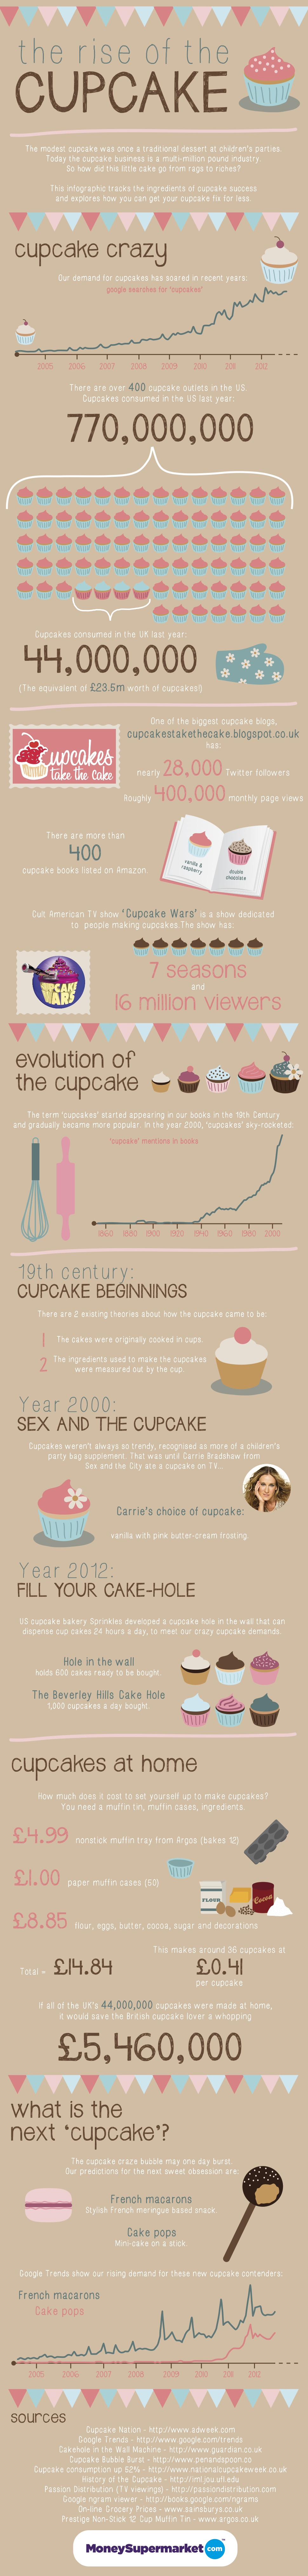 the-rise-of-the-cupcake_50b716a5e61d3